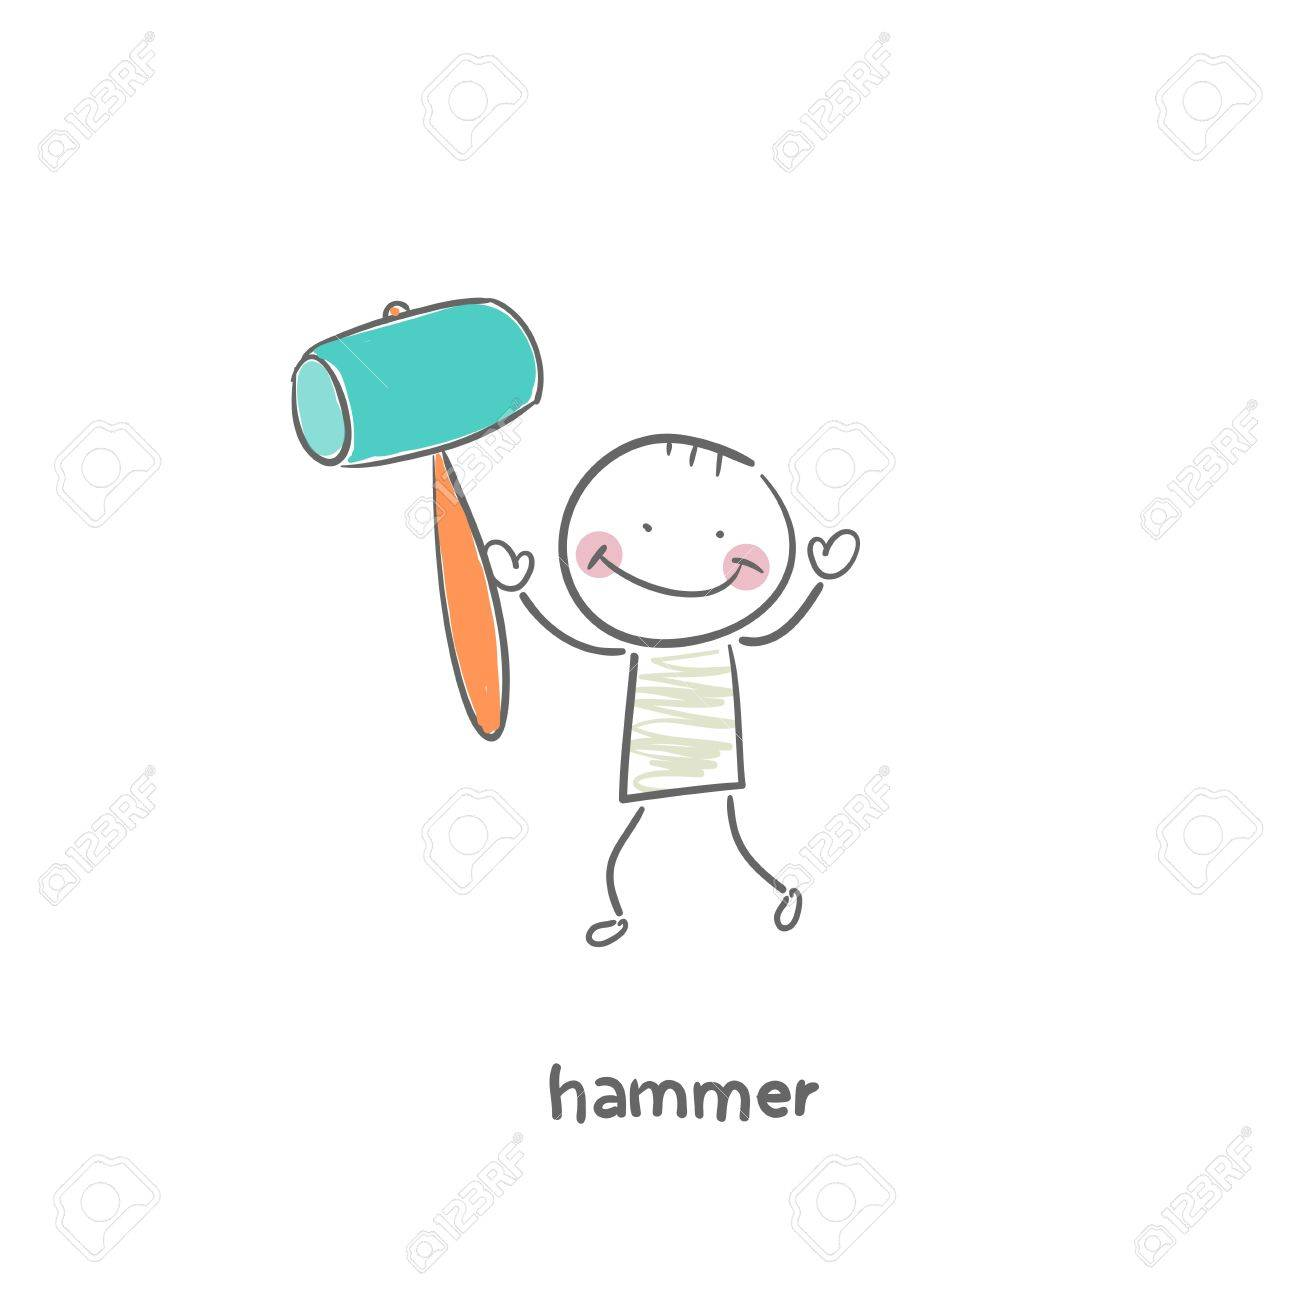 hammer Stock Vector - 18953233